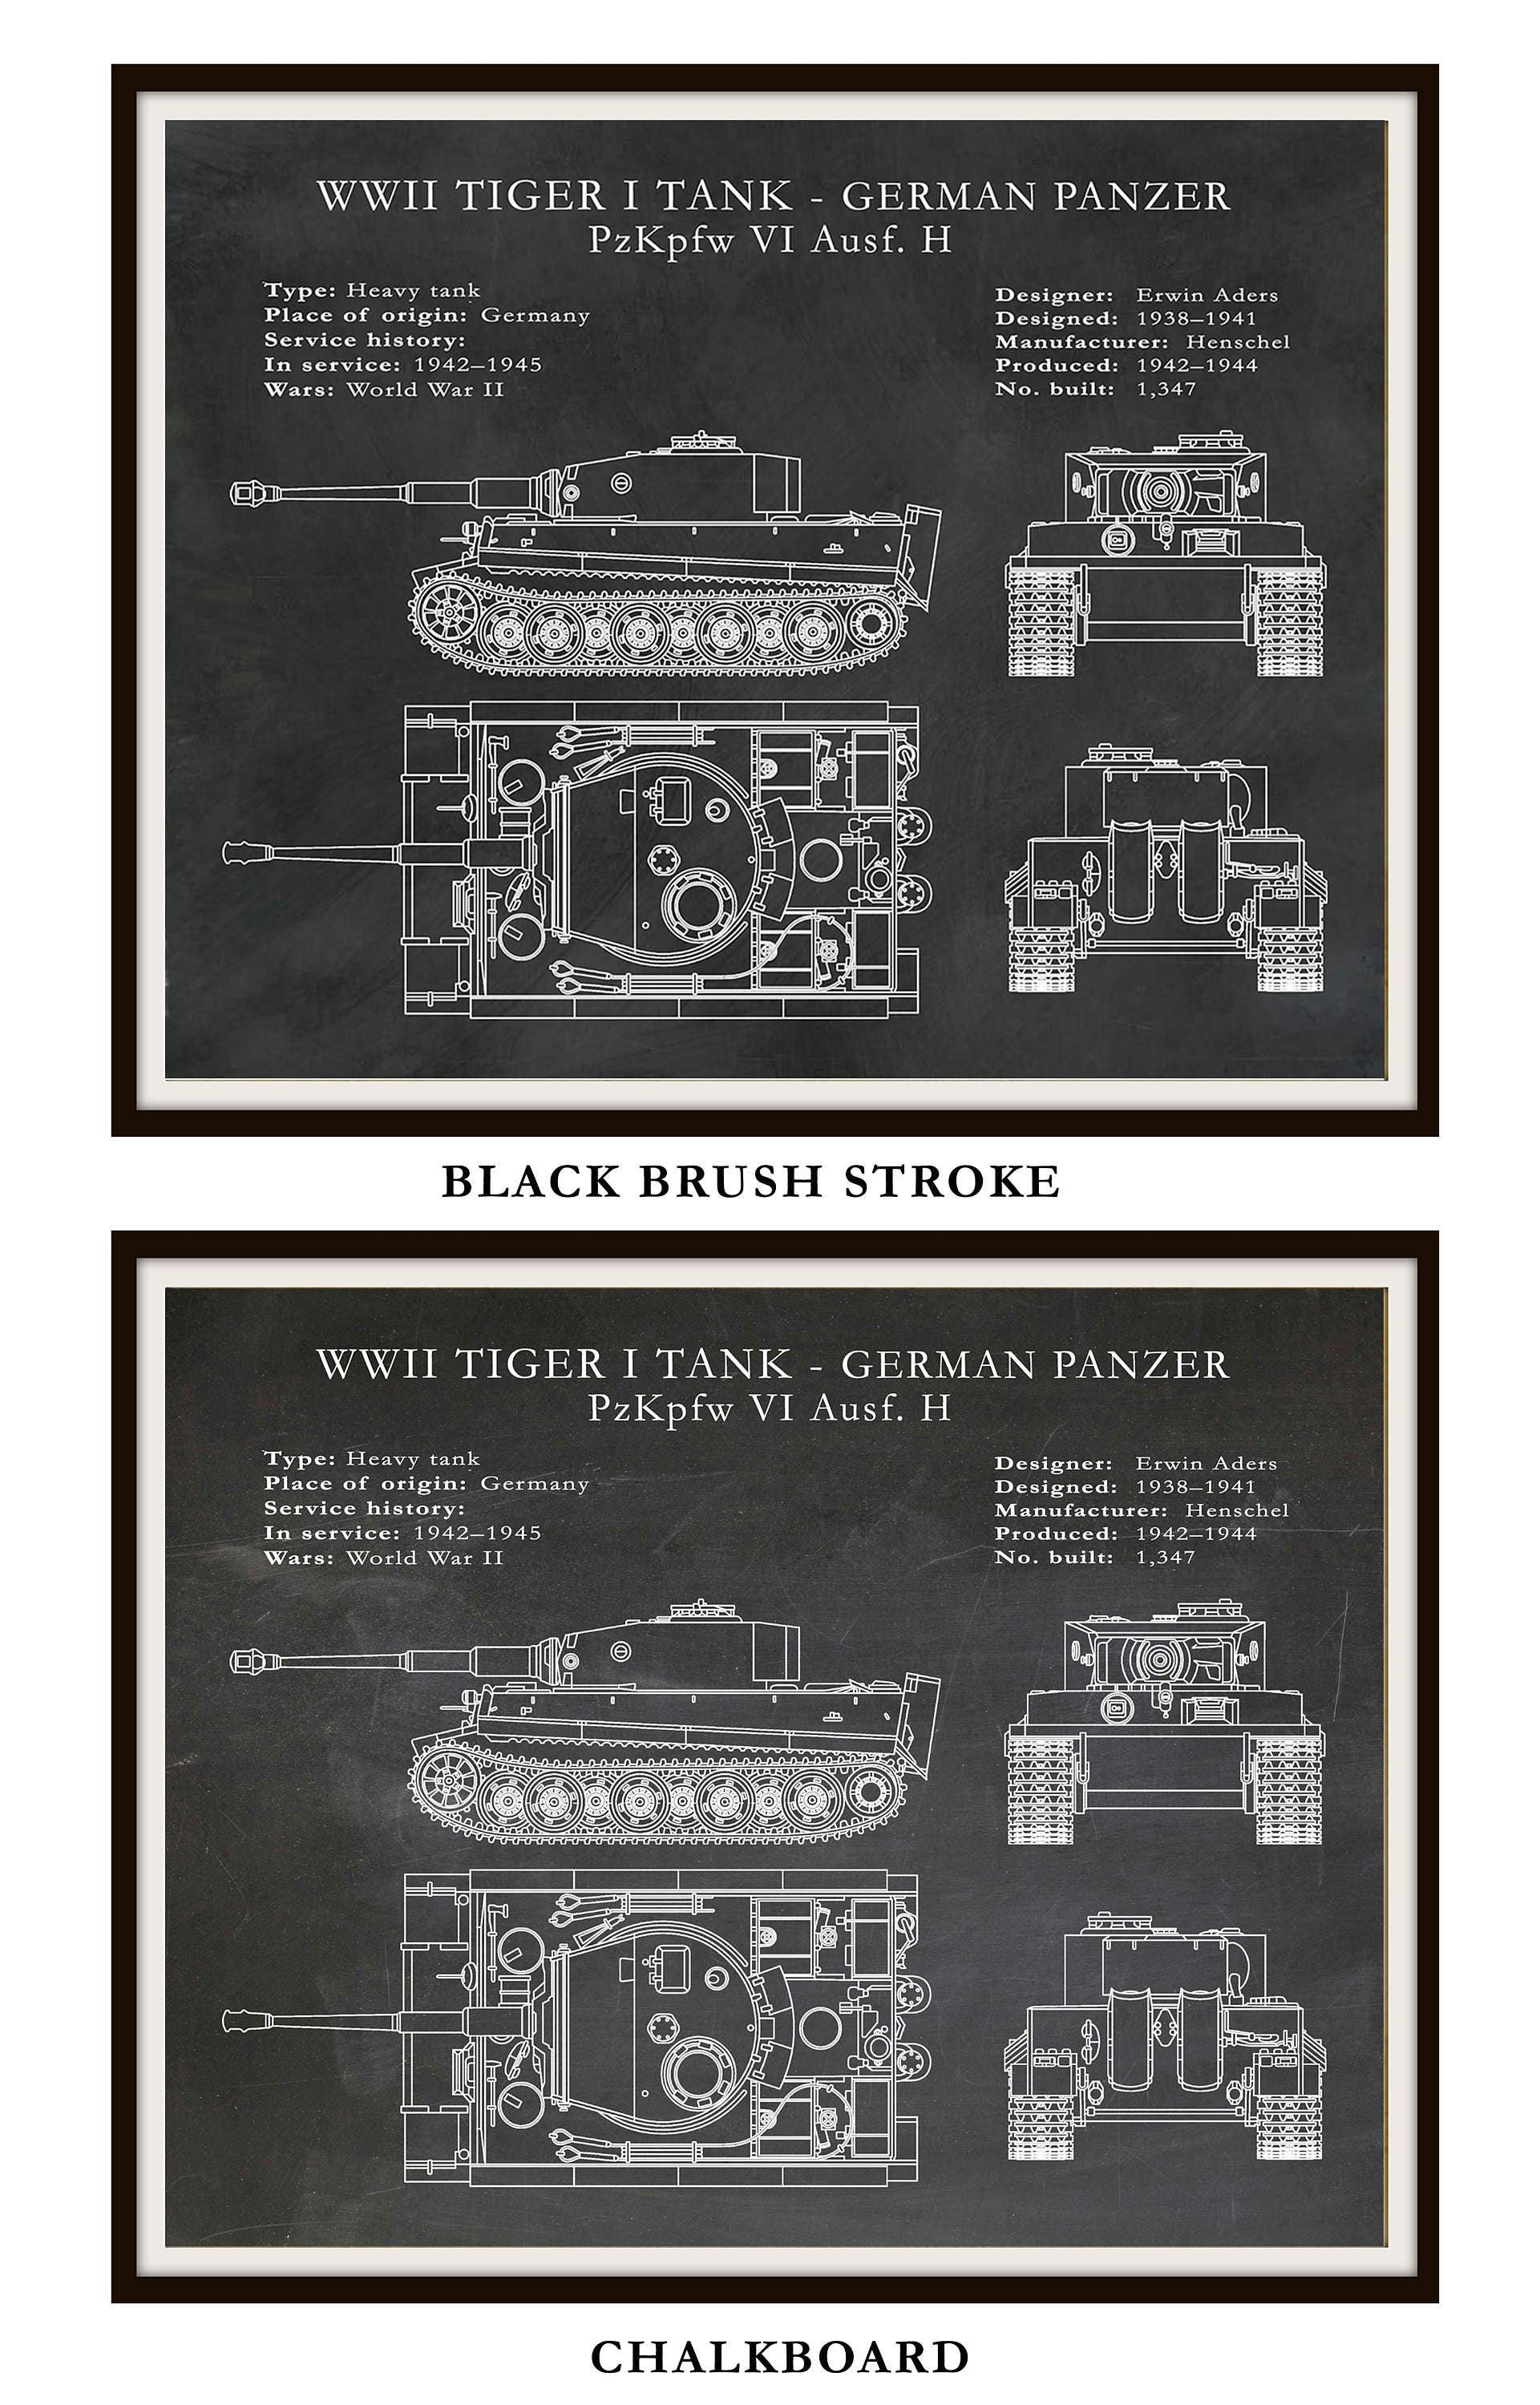 1942 German Panzer Tiger I Tank - German Nazi Army Tank - WWII Military Tank Blueprint - Soldier Wall Art - WWII Collector Print  sc 1 st  Blue Moon Patent Prints u0026 Drawings & 1942 German Panzer Tiger I Tank - German Nazi Army Tank - WWII ...